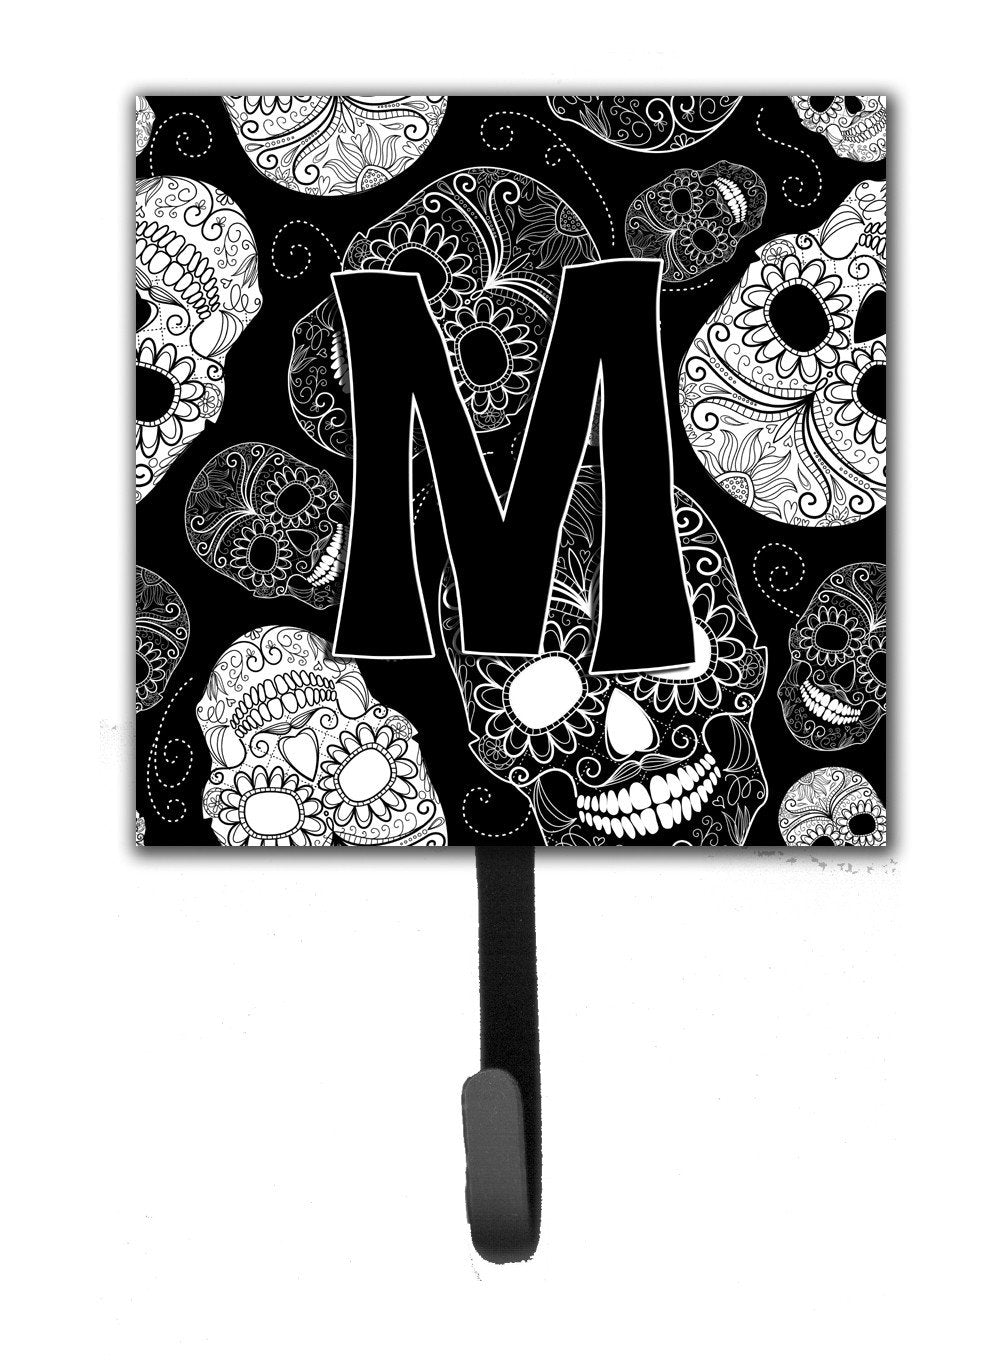 Letter M Day of the Dead Skulls Black Leash or Key Holder CJ2008-MSH4 by Caroline's Treasures